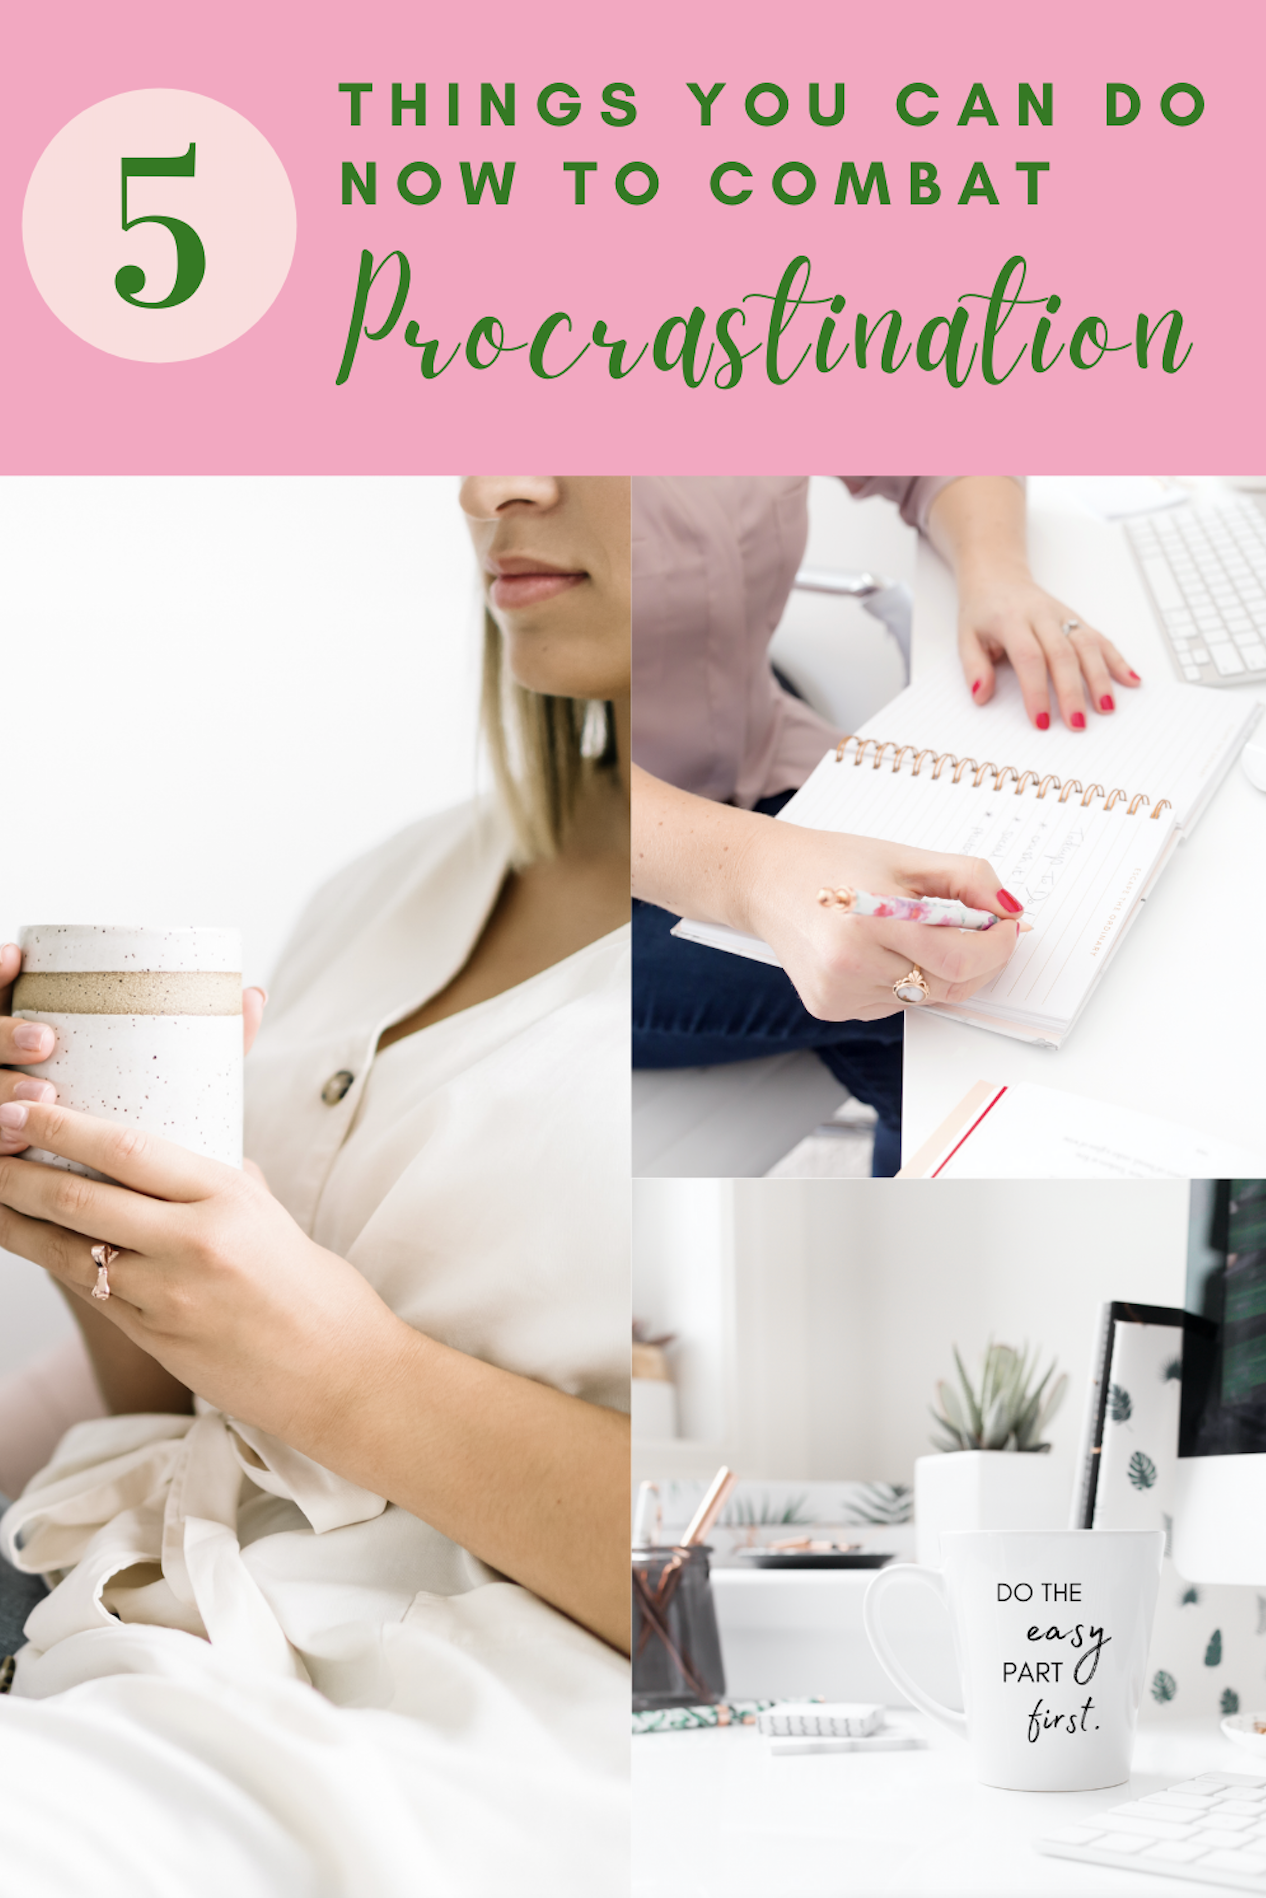 Do you find yourself putting things off until the last minute a lot? Here are five things you can do right now to combat procrastination. #procrastination #productivity #timemanagement #lifestyleblog #wellness #healthtips #mentalhealth #hipmamasplace #lifestyle